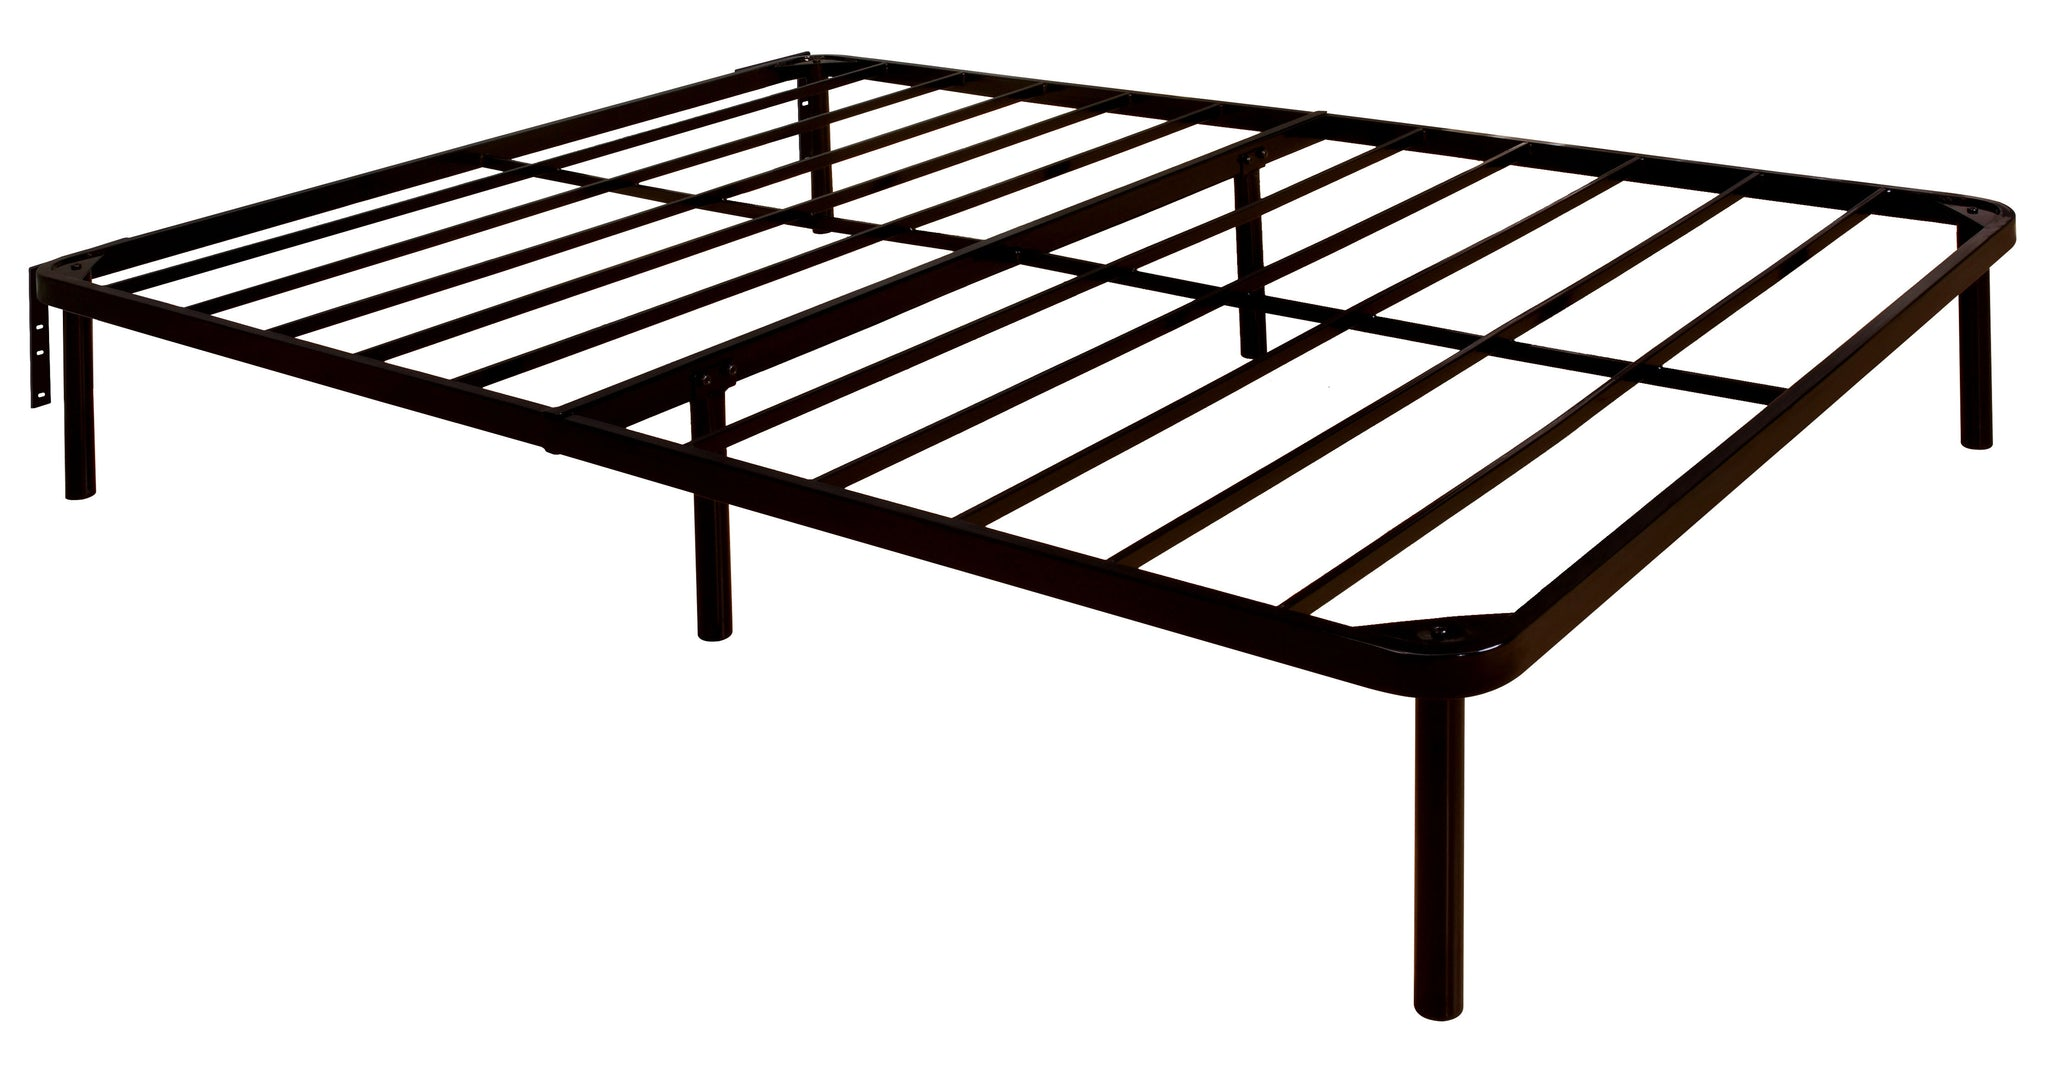 Zickory Full Metal Bed Frame - IDF-FRM40Q